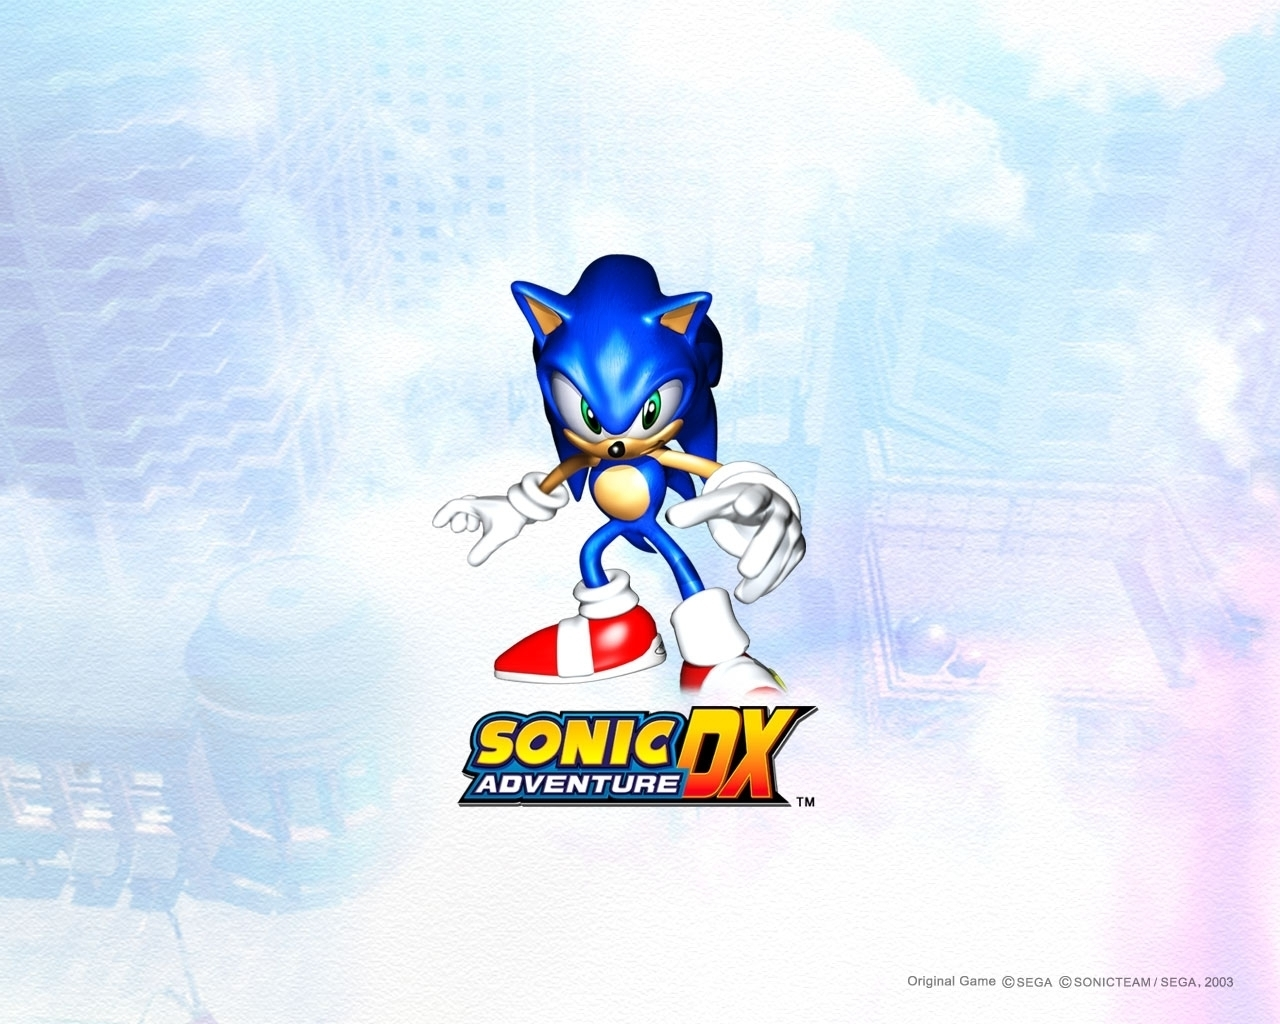 huge-sonic-fan images sonic adventure dx hd wallpaper and background